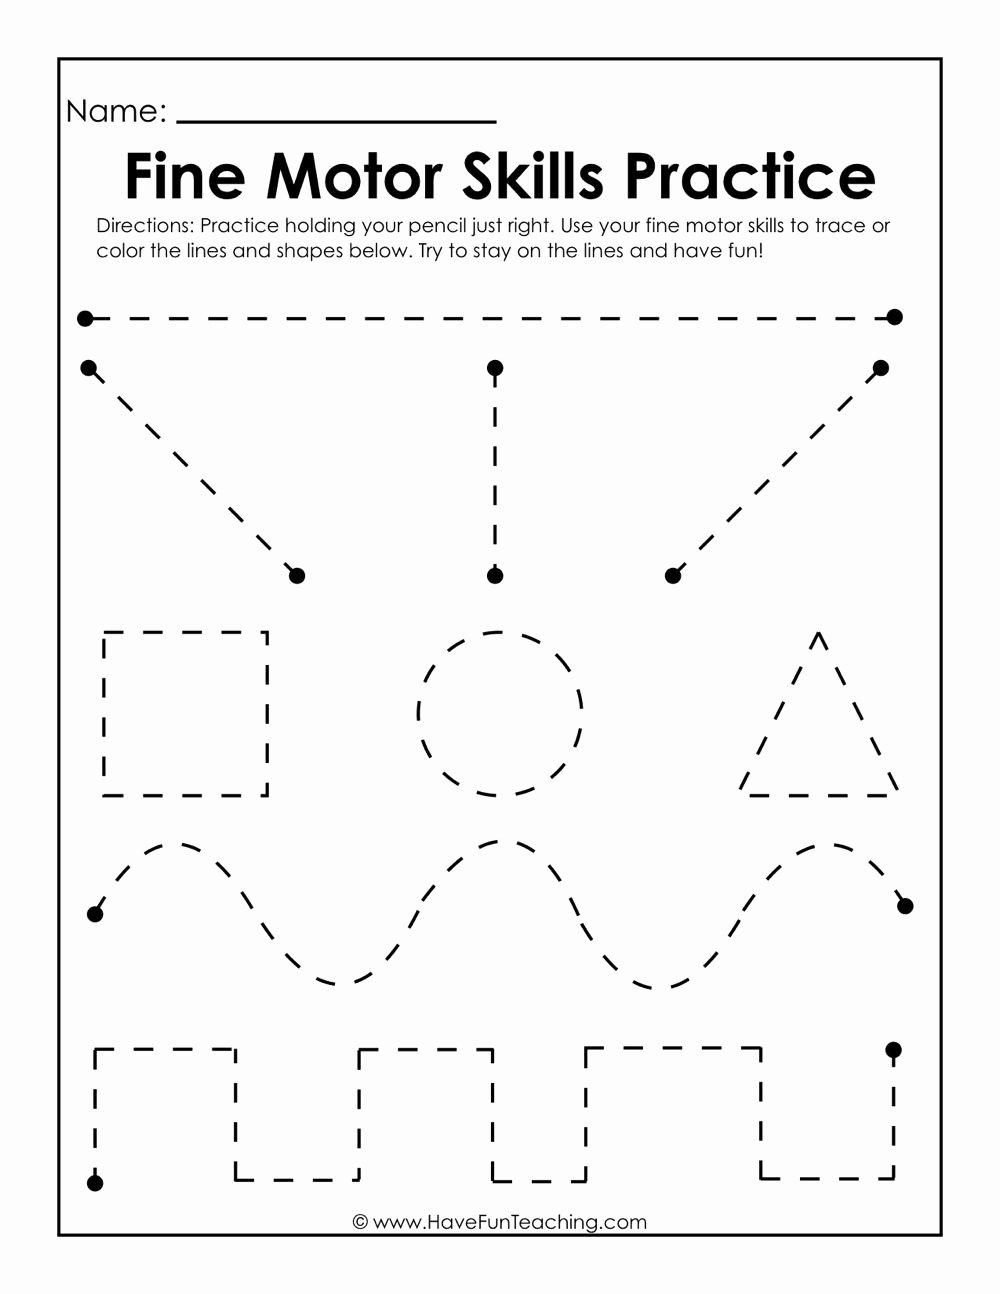 Worksheets for Preschoolers Learning to Write Beautiful Fine Motor Skills Practice Worksheet Writing Worksheets